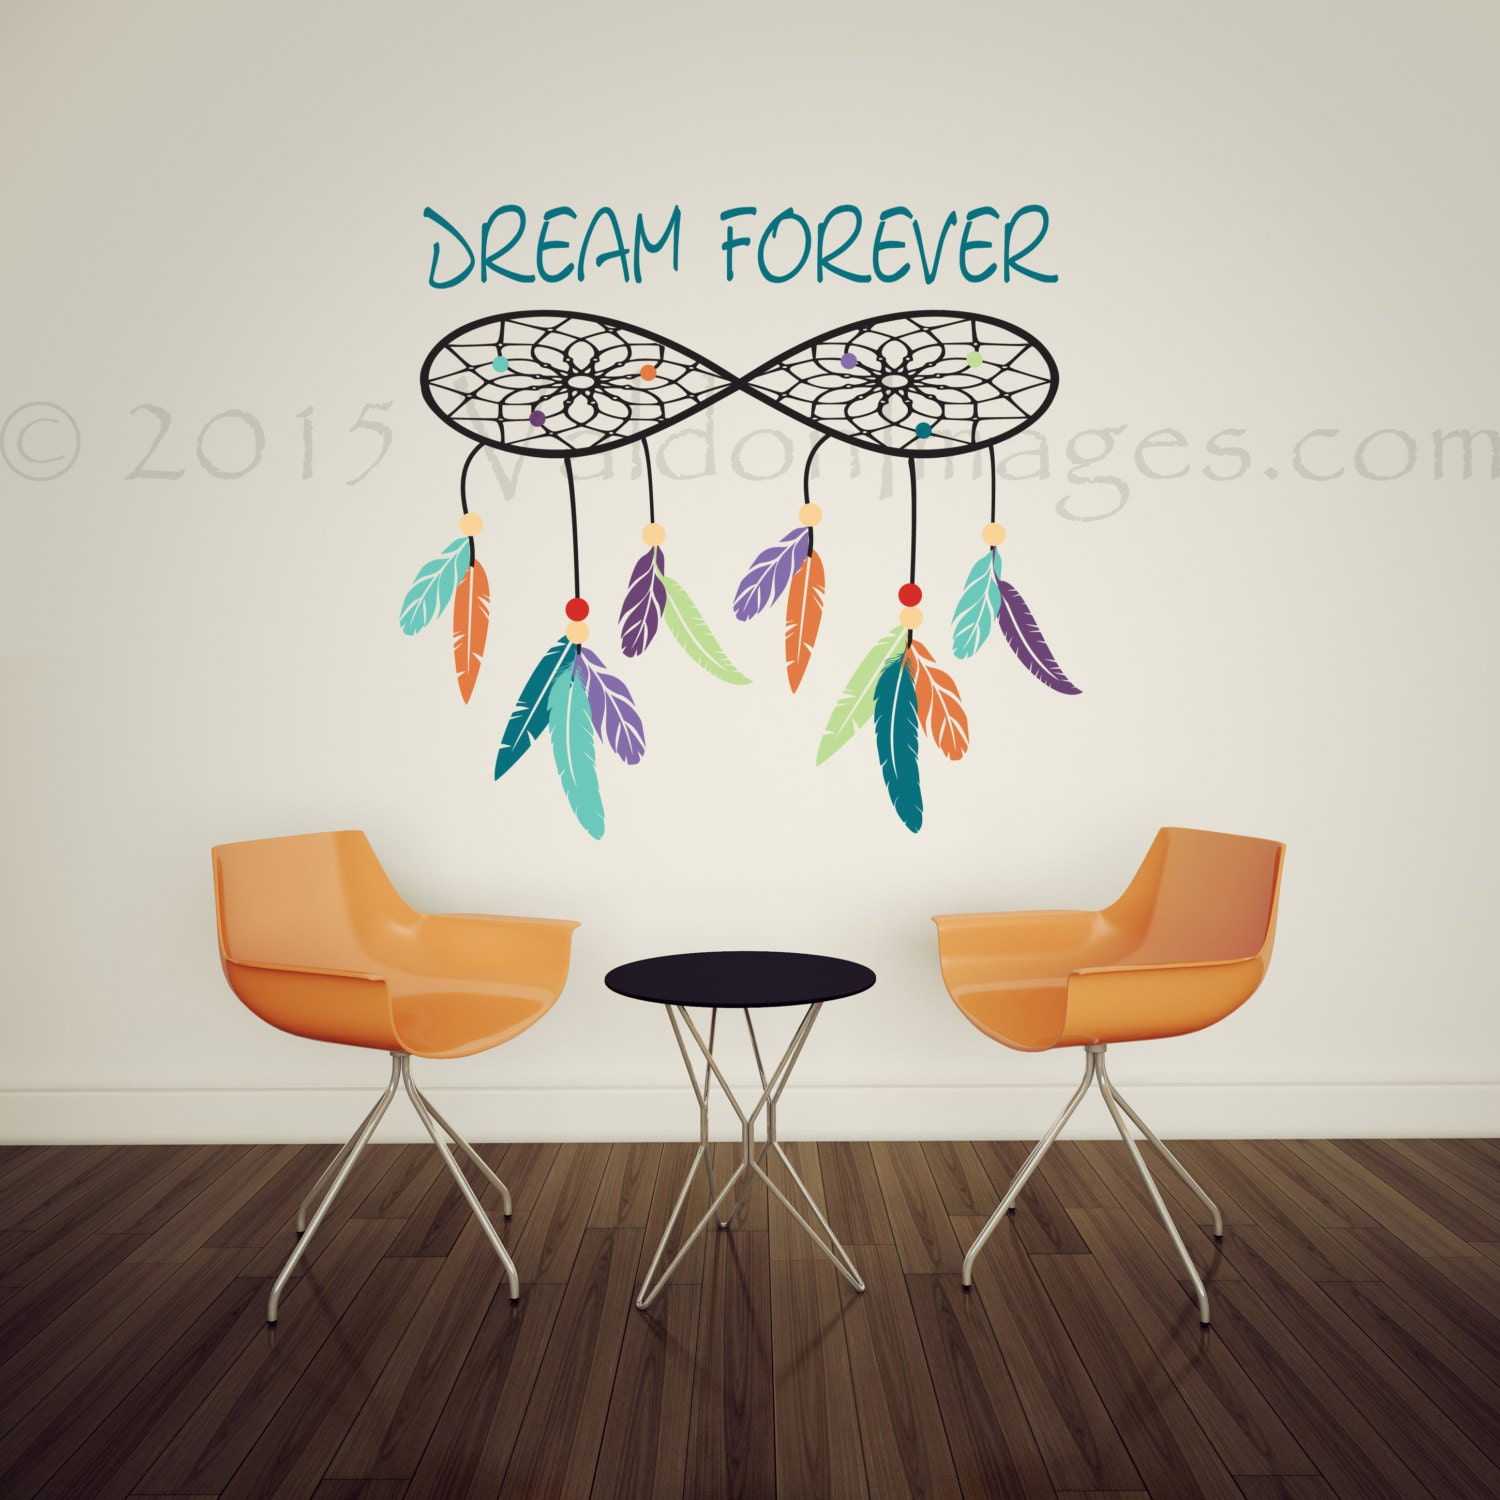 Dreamcatcher wall decal dorm room wall decor bedroom wall zoom amipublicfo Gallery